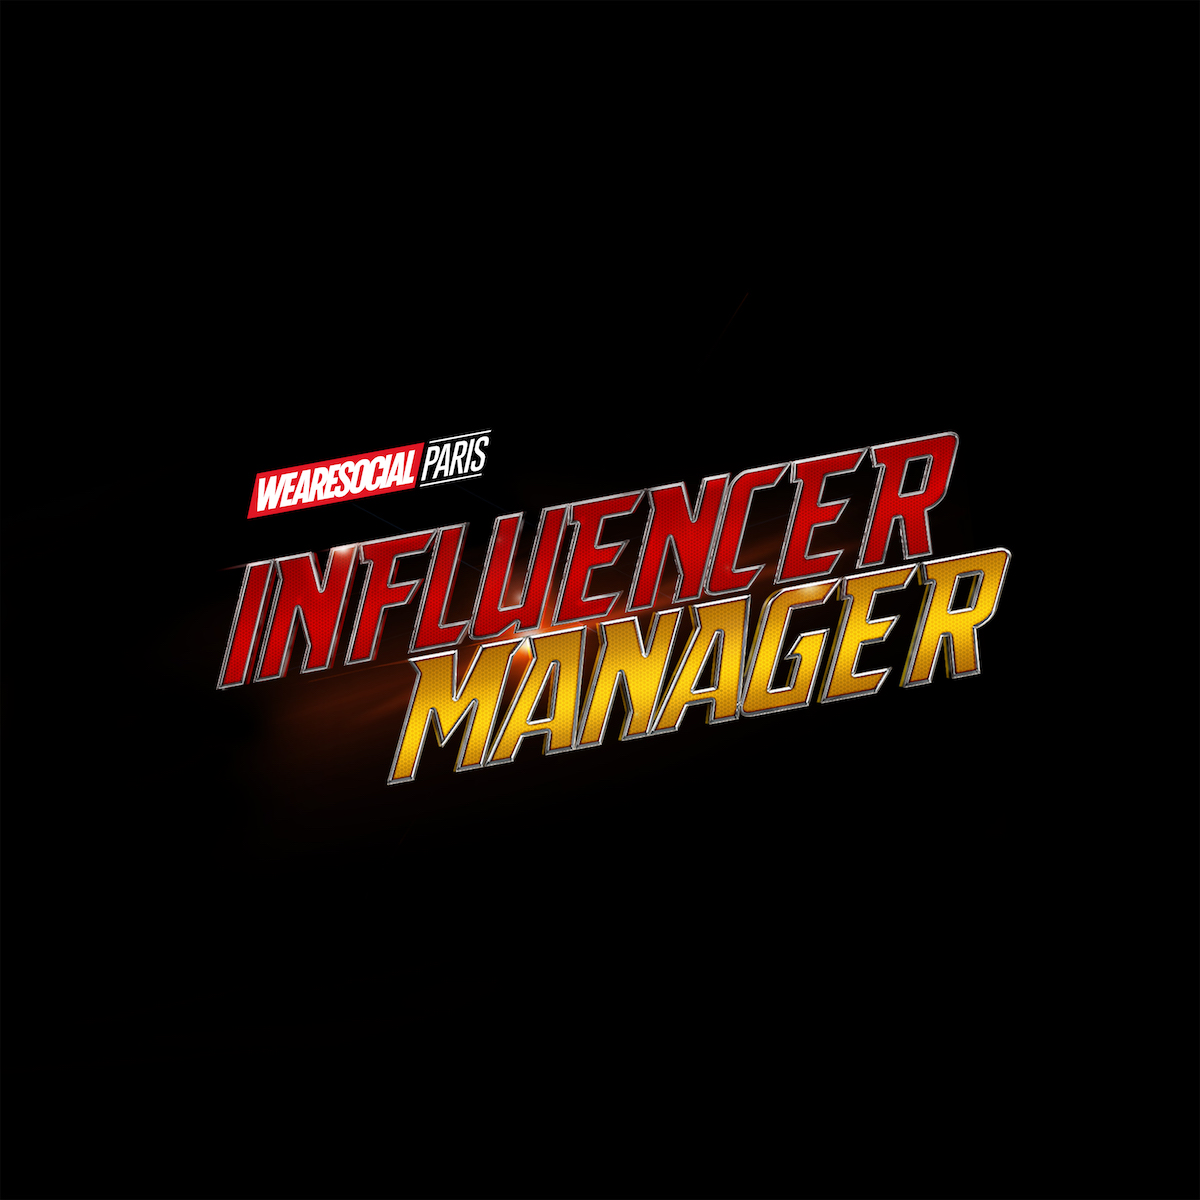 Superhero Logos for creative agency job titles - Influencer Manager / Ant-Man